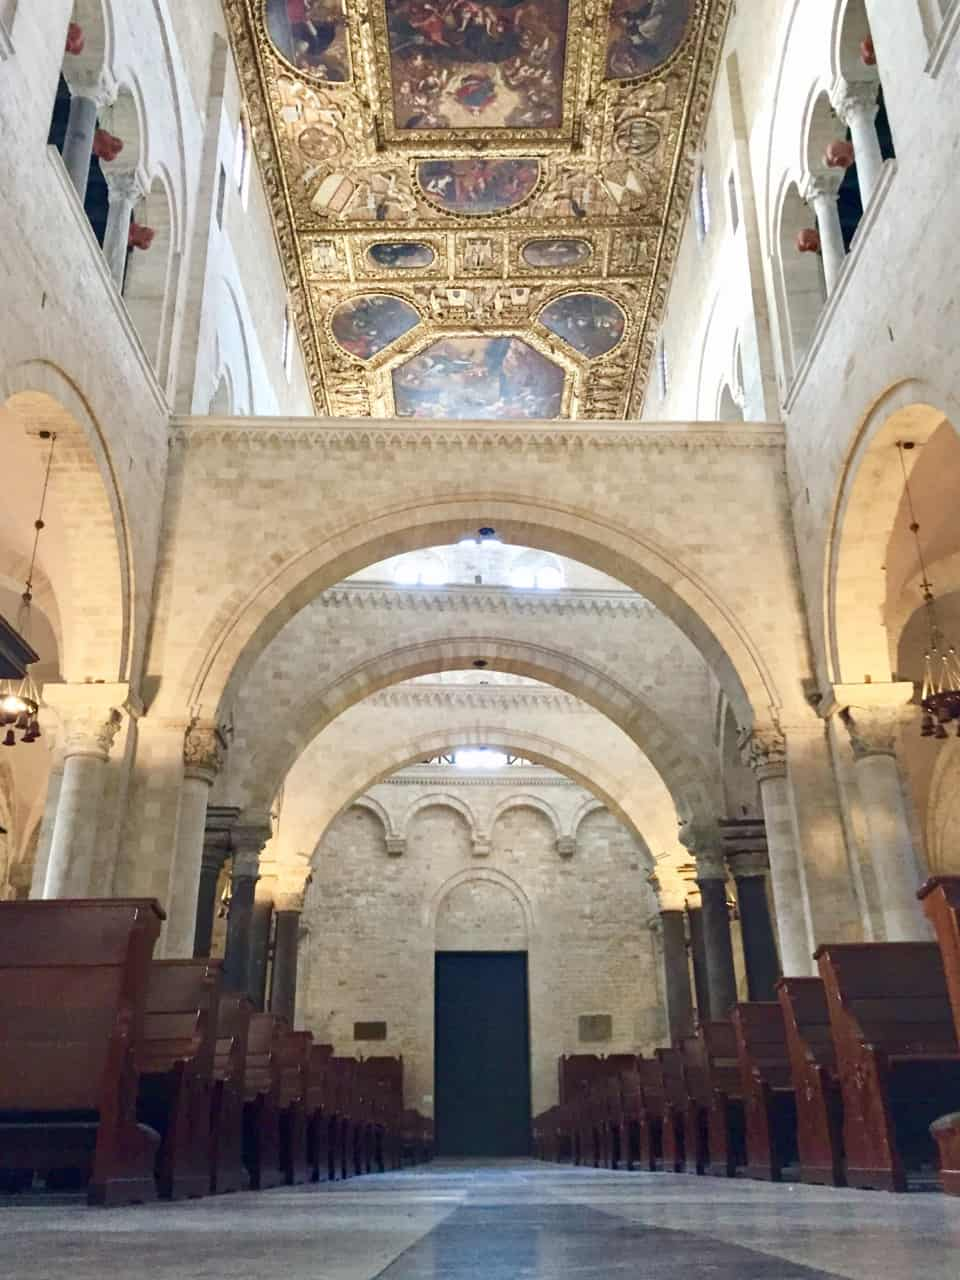 basilica-saint-nicholas-bari-interior-photo